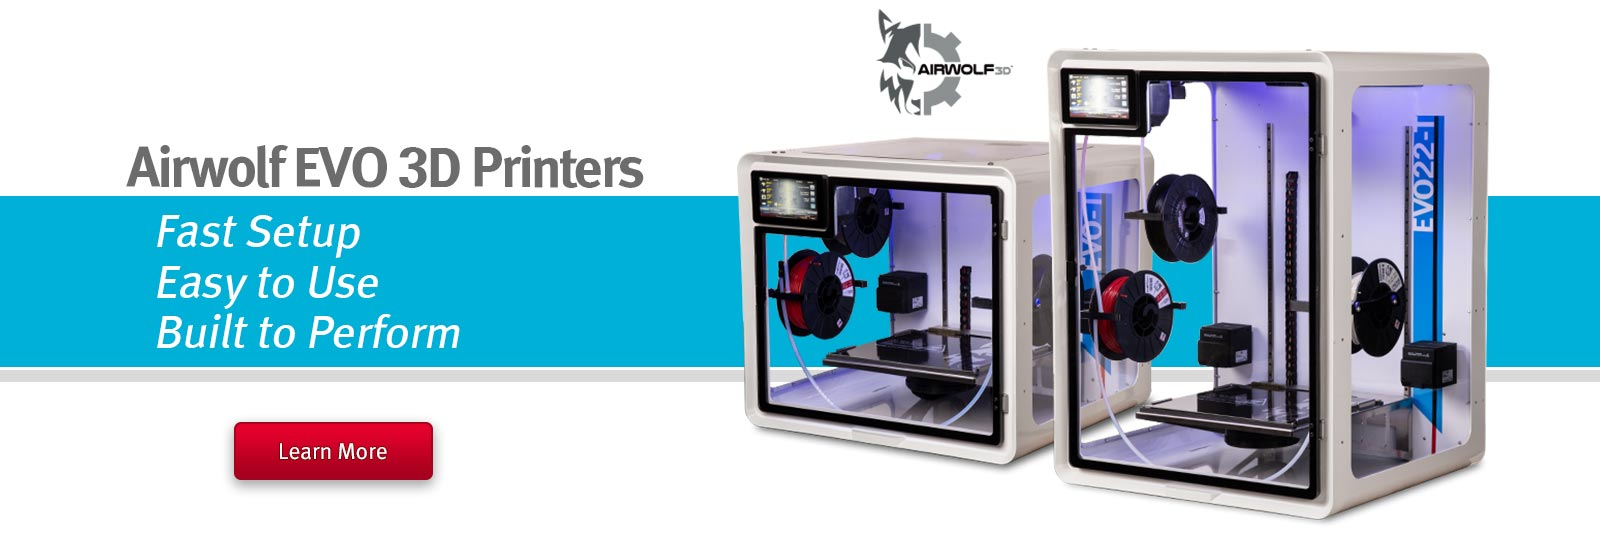 Airwolf EVO 3D Printers